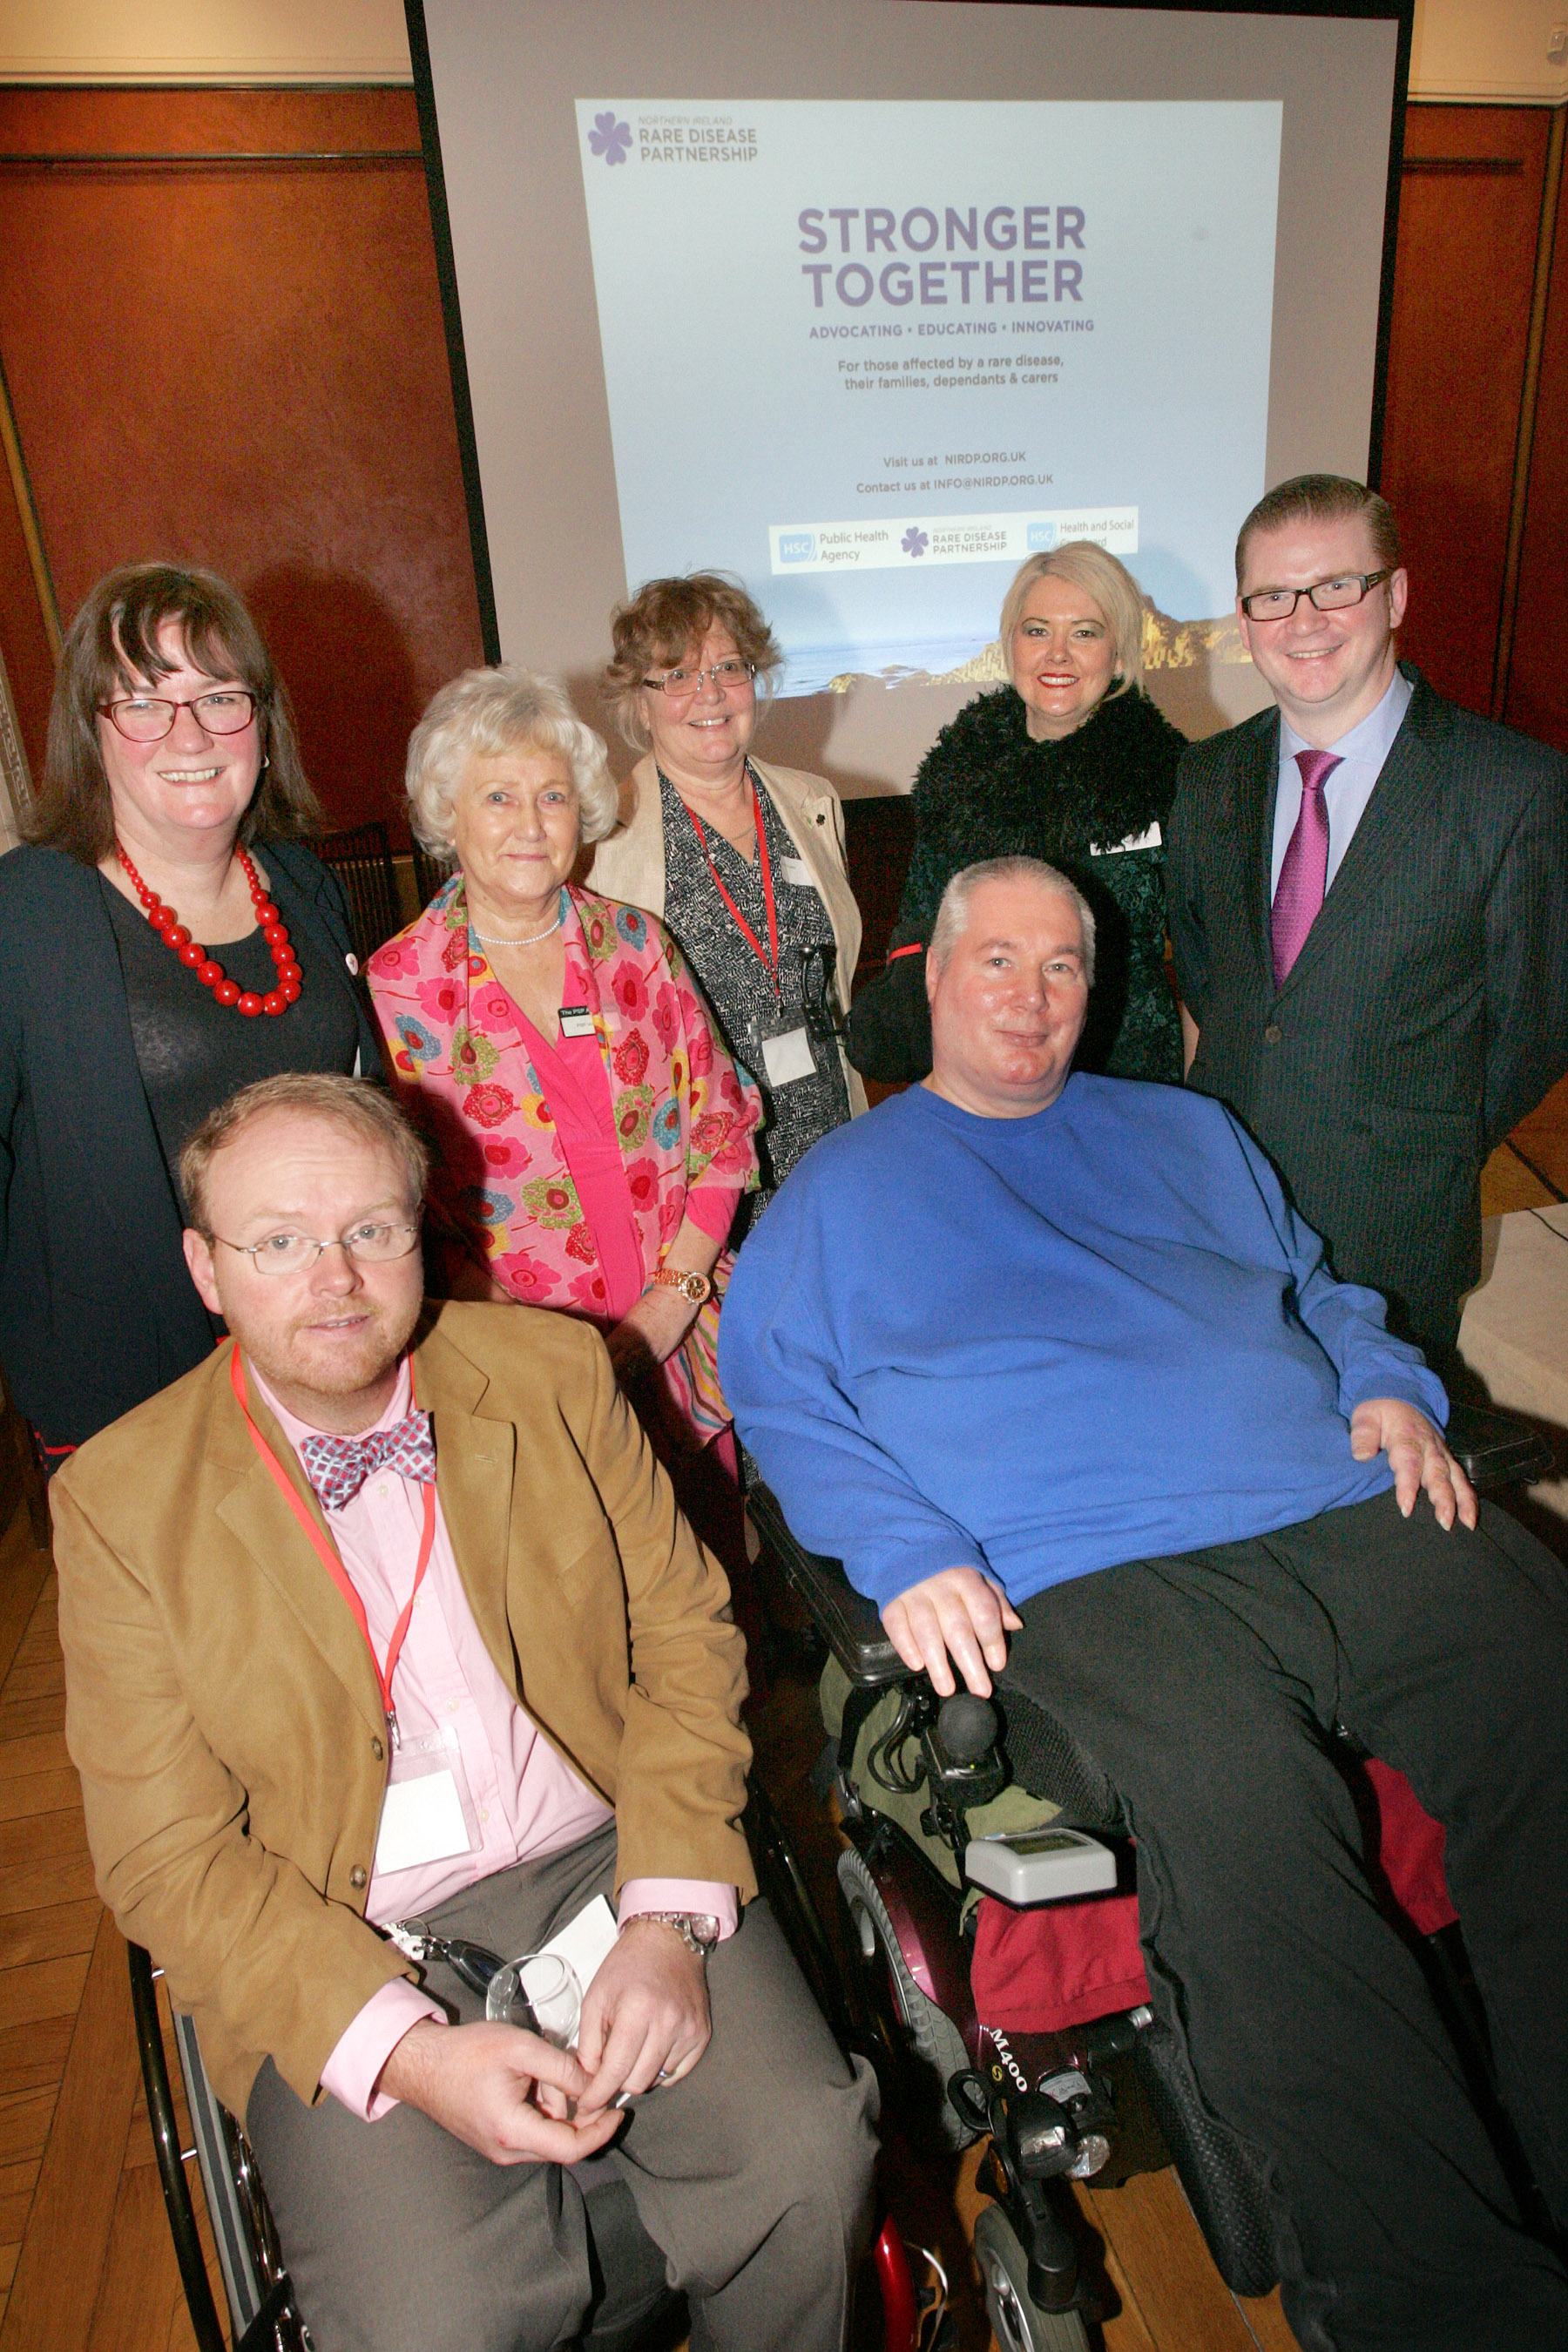 people living with rare disease, clinicians, policy makers and politicians gathered together